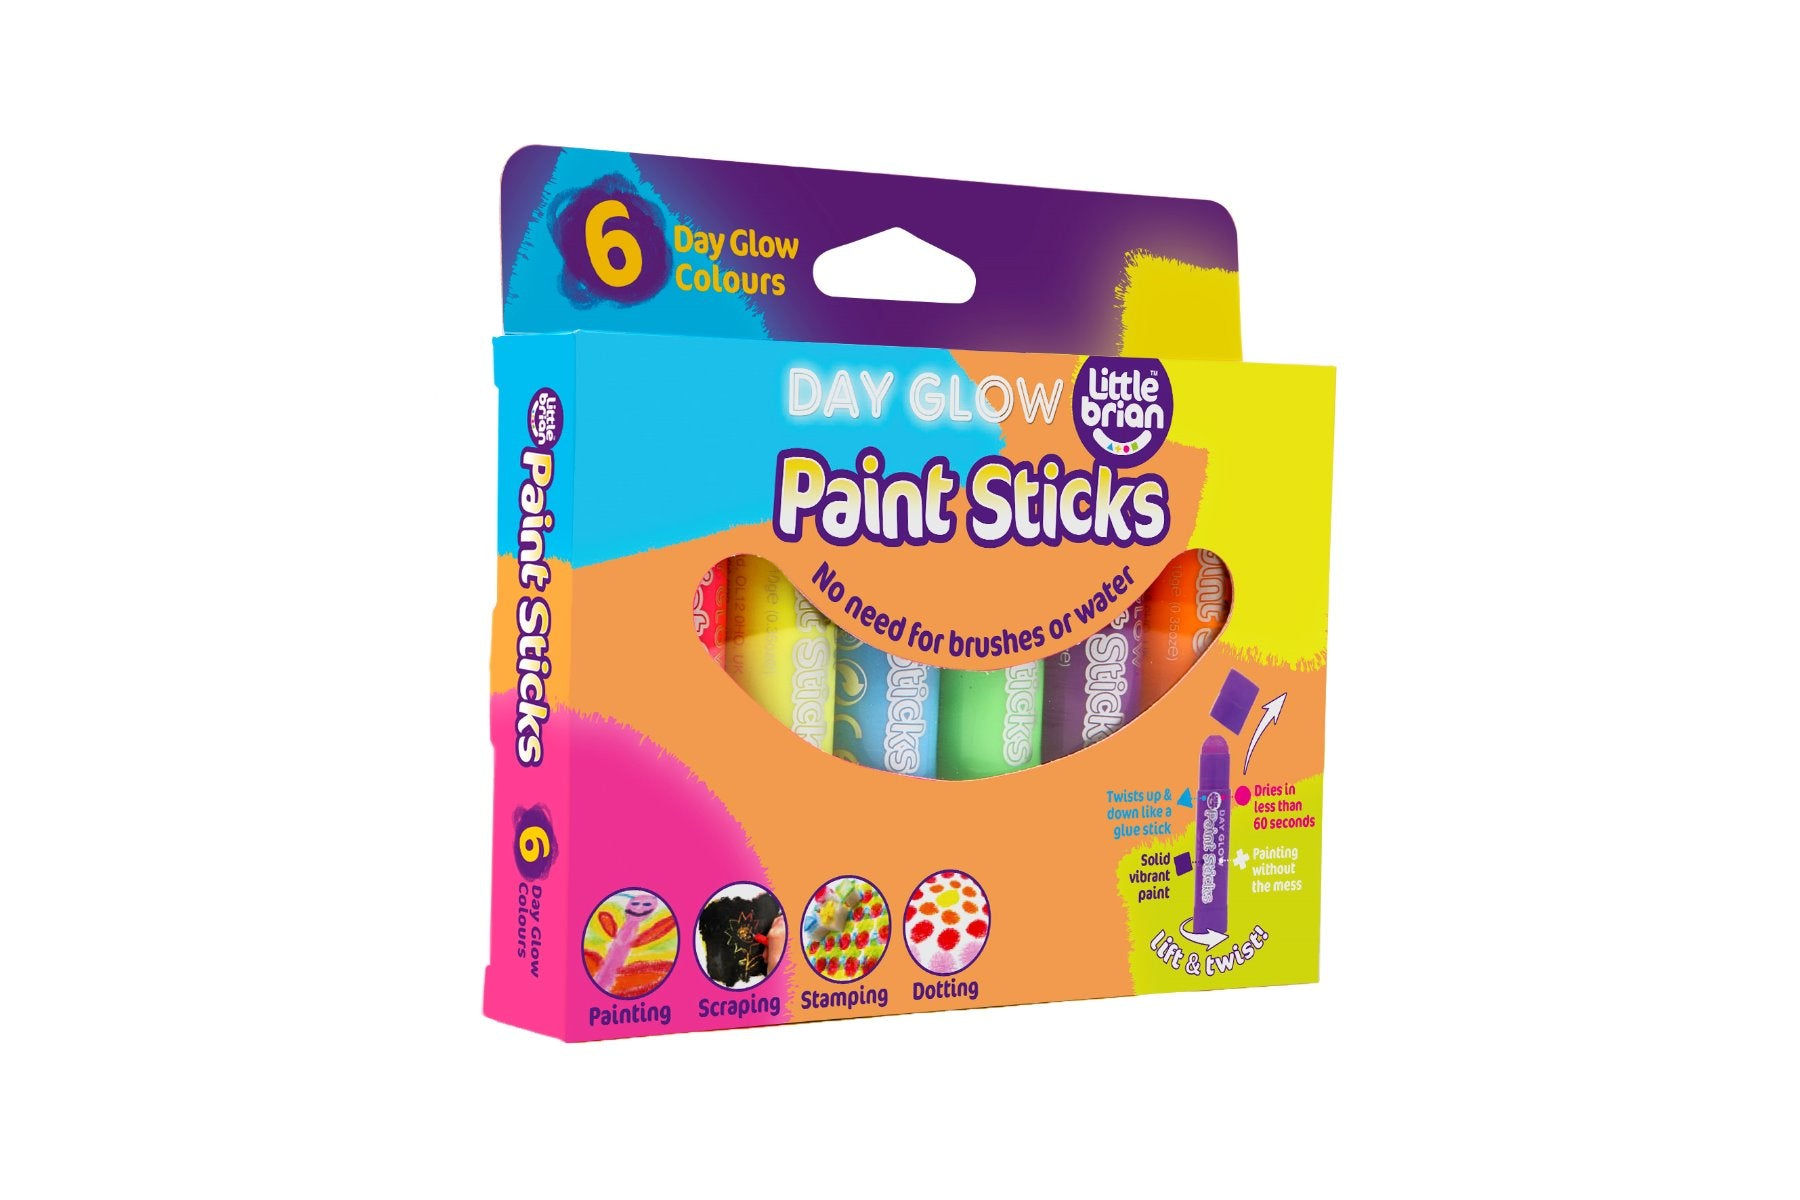 Little Brian Paint Sticks Day Glow Set of 6 at Little Sprout